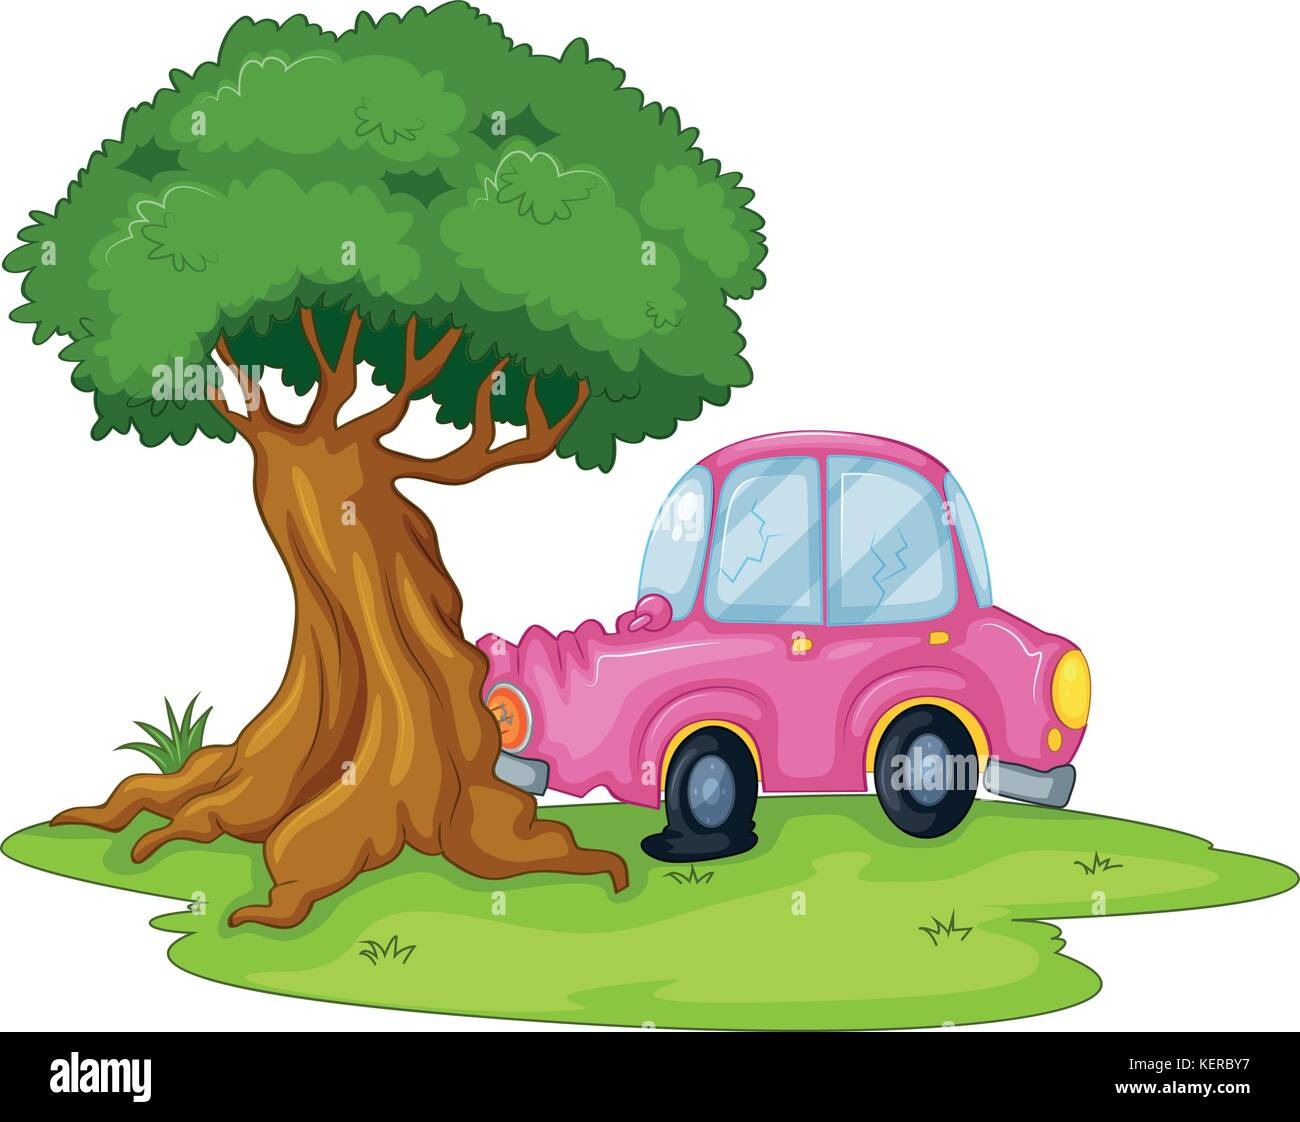 Illustration of a pink car bumping the giant tree on a white background - Stock Vector